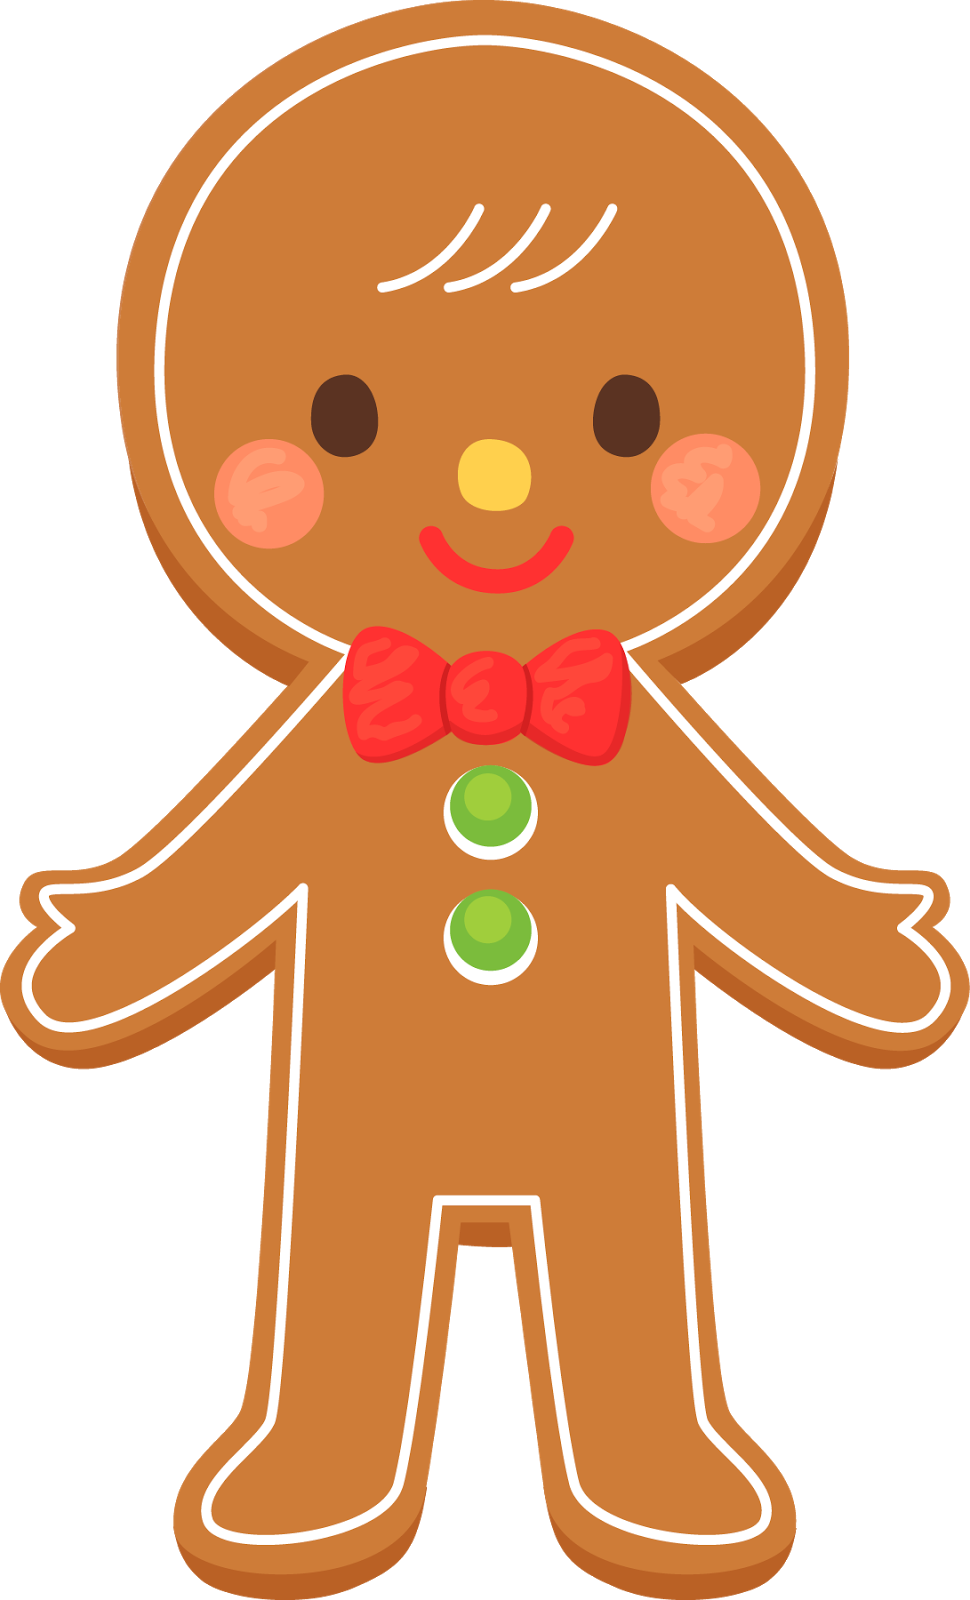 Cute Gingerbread House Clip Art Images & Pictures - Becuo